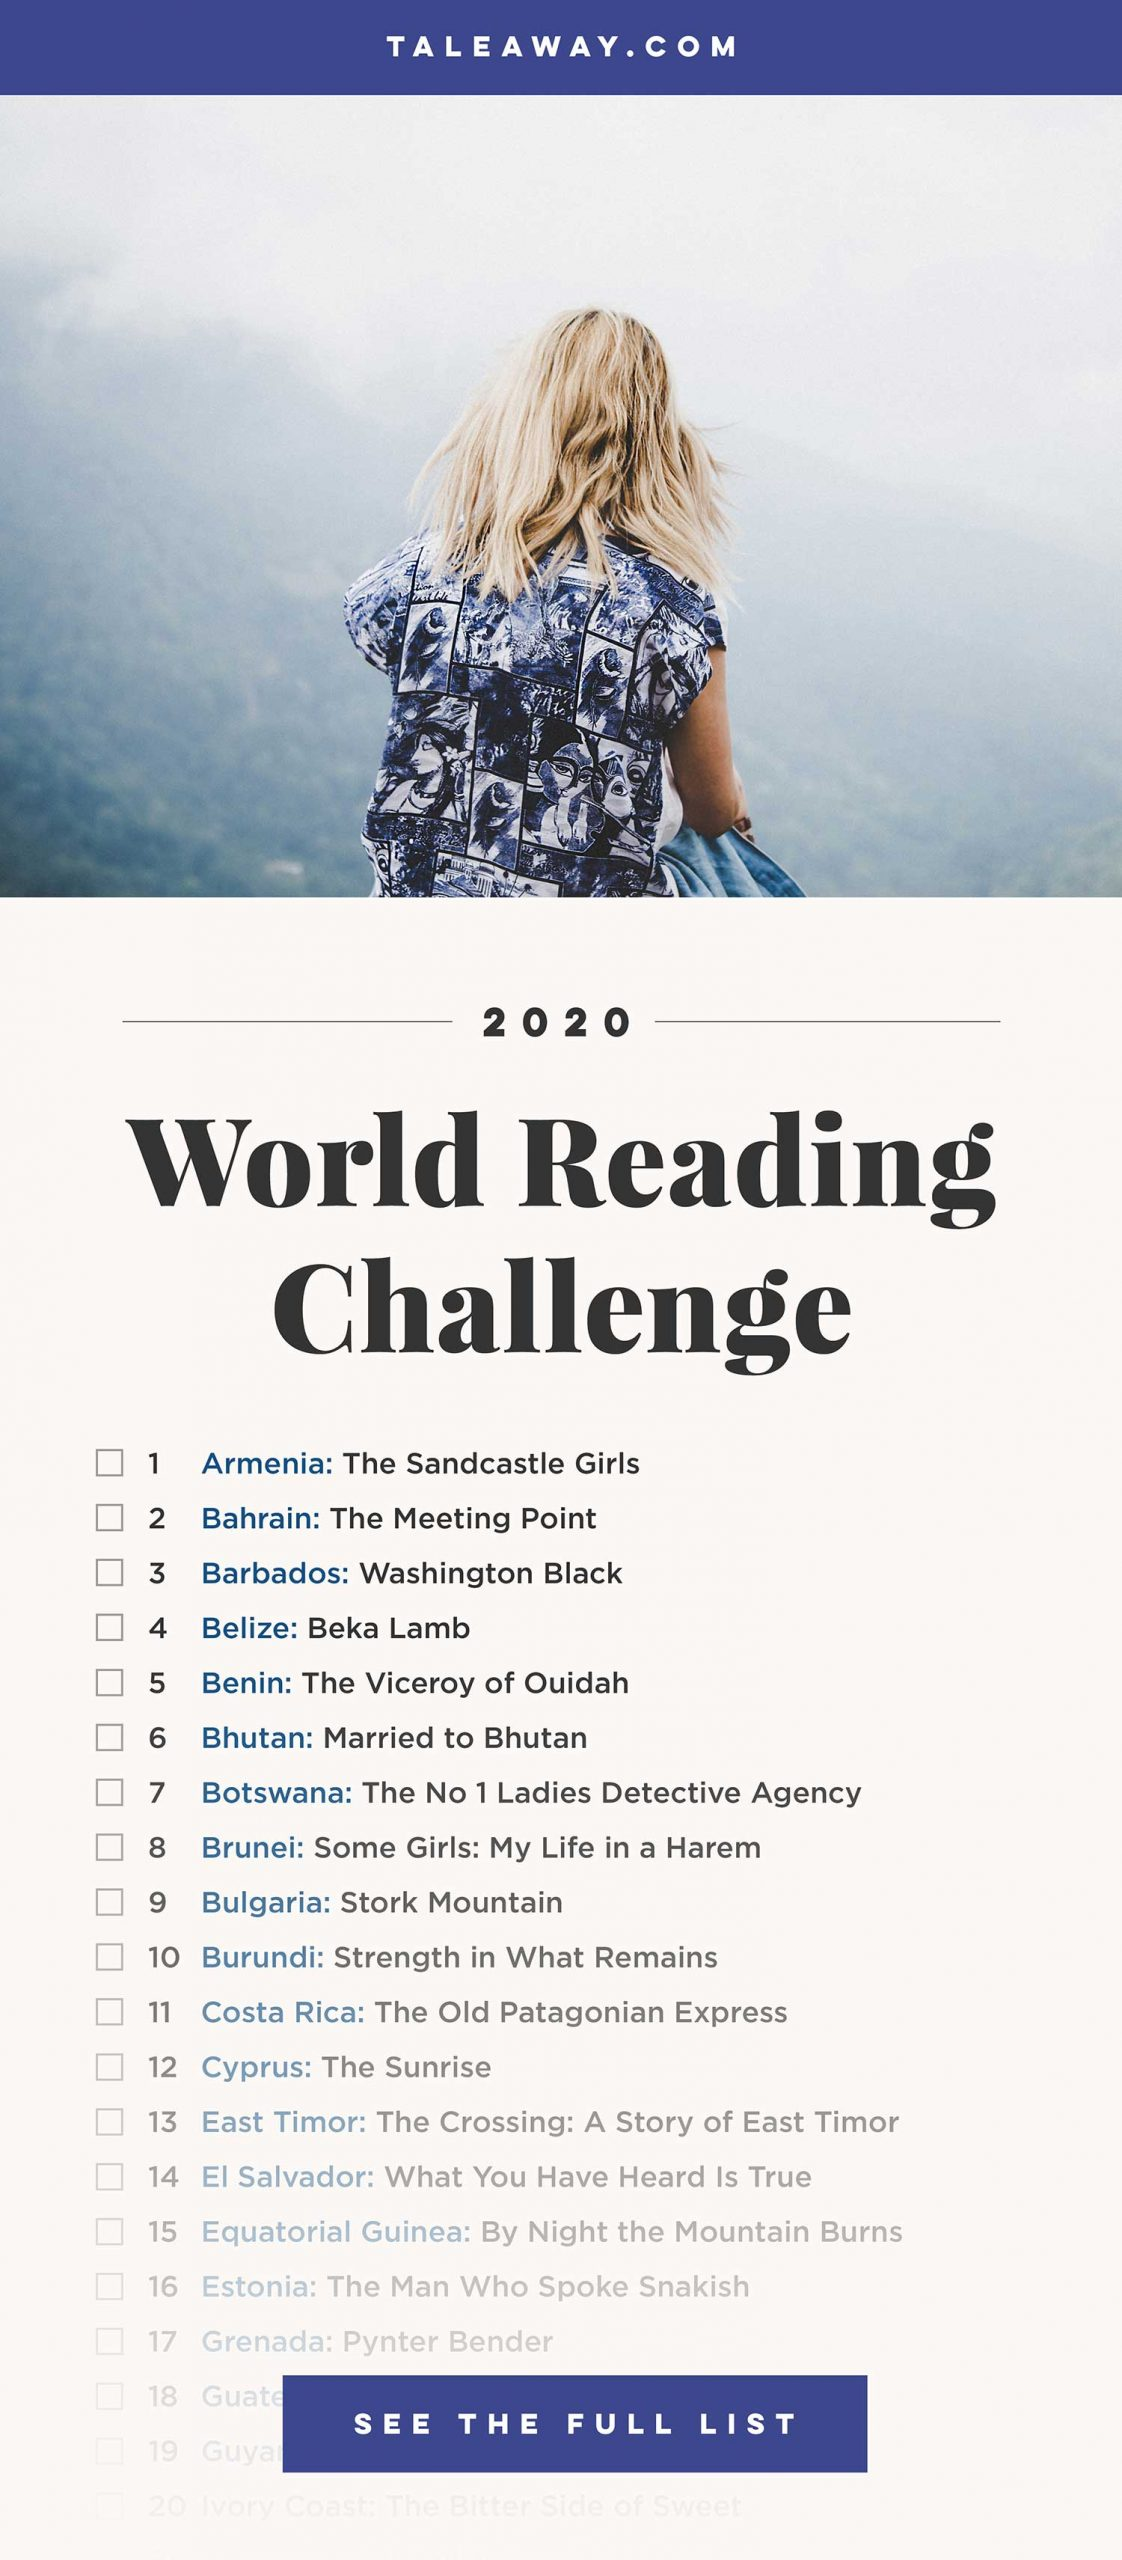 World Reading Challenge, Books Around The Globe - For more books visit www.taleway.com to find books set around the world. reading challenge, 2020 reading challenge, world reading challenge, book challenge, 52 books, 52 weeks, new years resolution, books you should read, books from around the world, world books, books and travel, travel reads, reading list, books around the world, books to read, books set in different countries